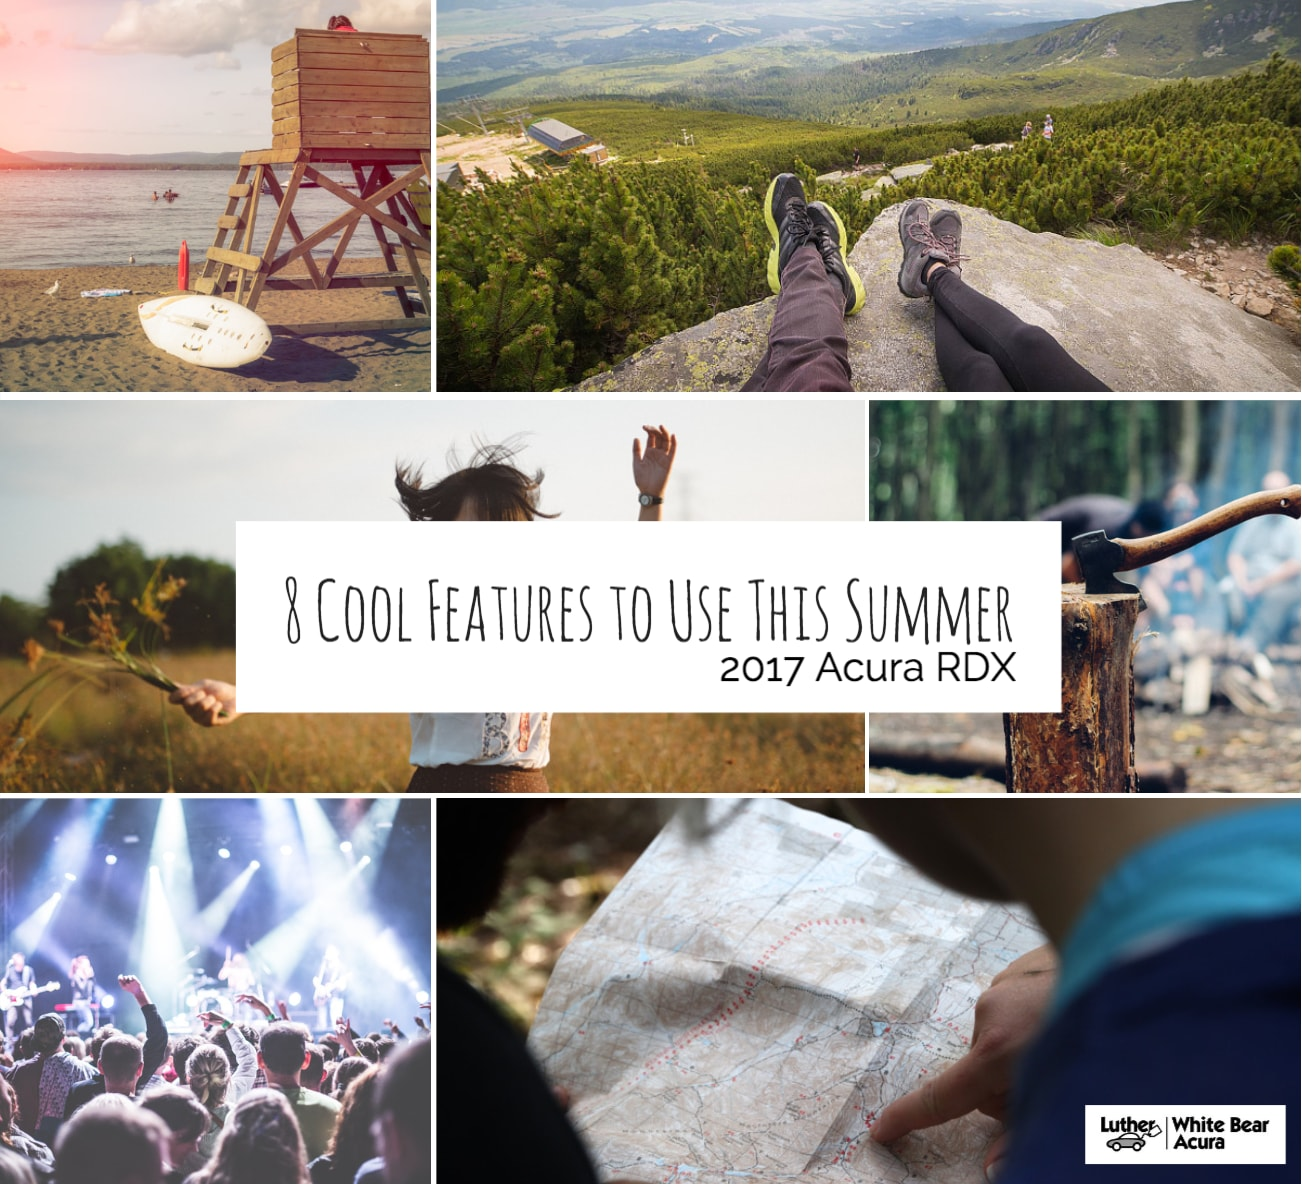 8 Cool Features To Use This Summer